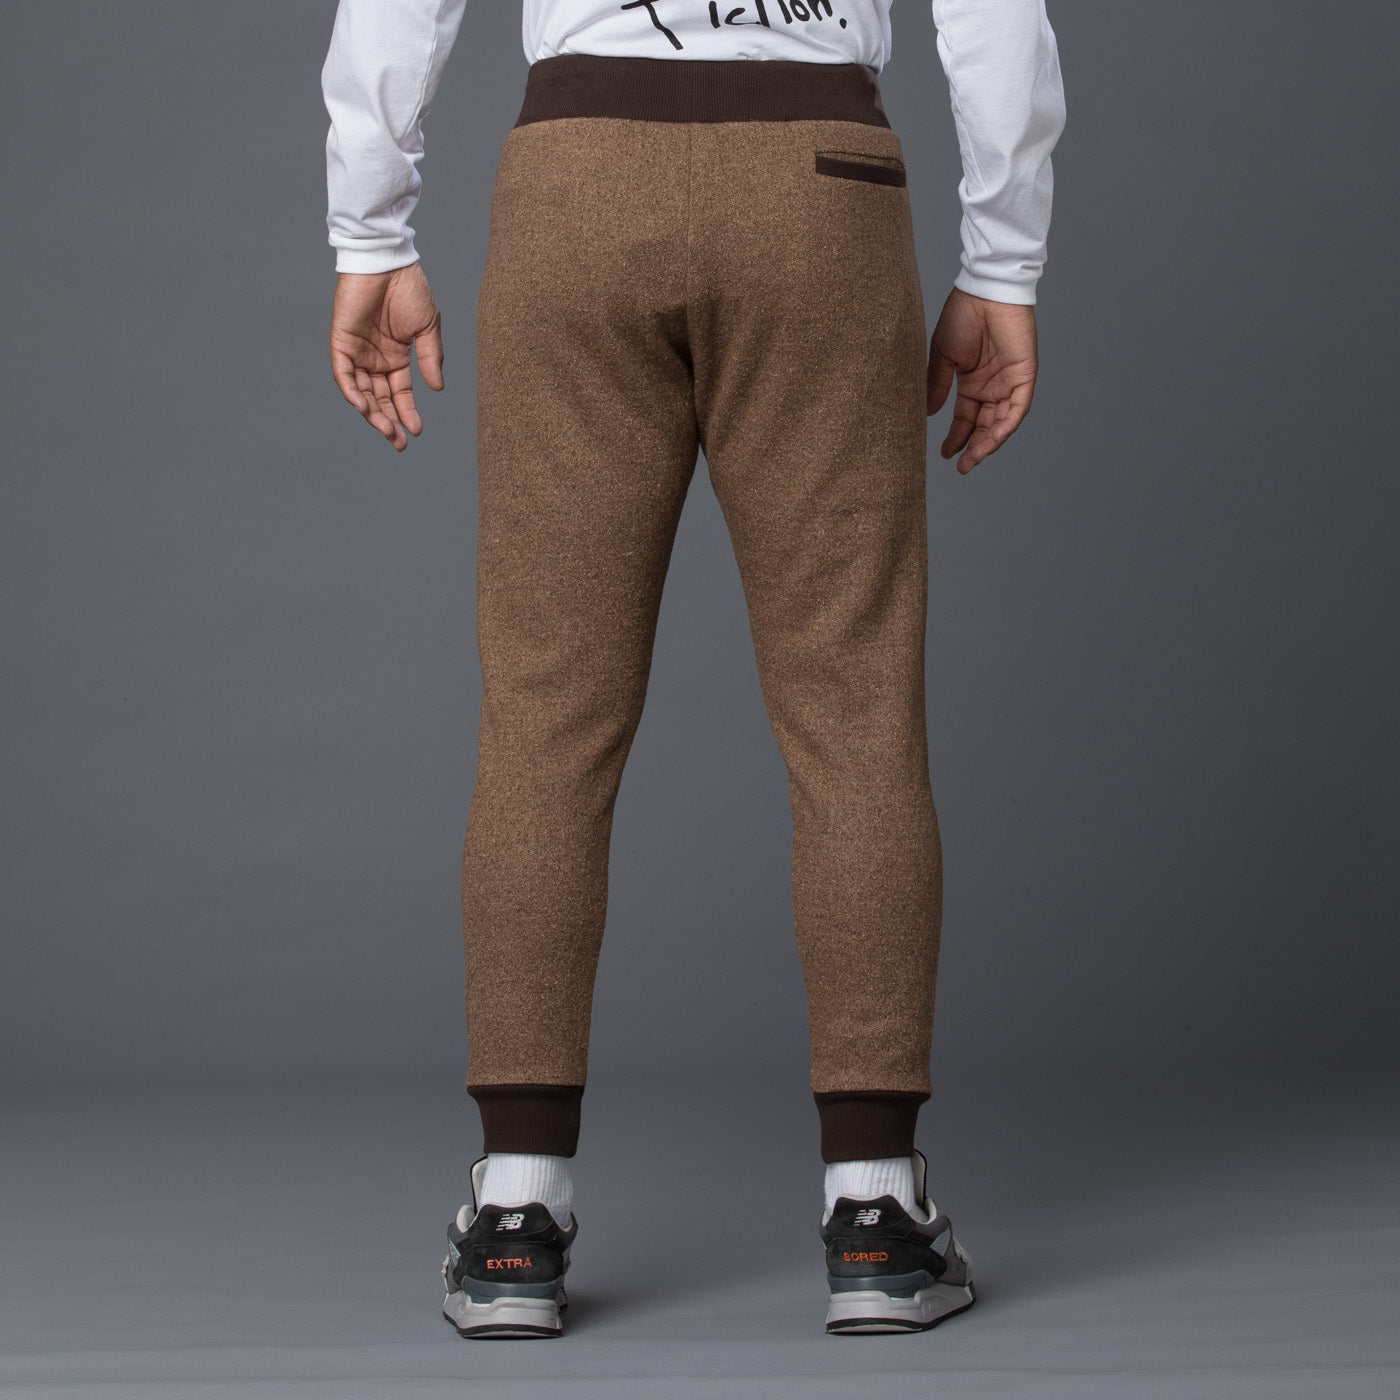 Thaddeus O'Neil Brown Joggers